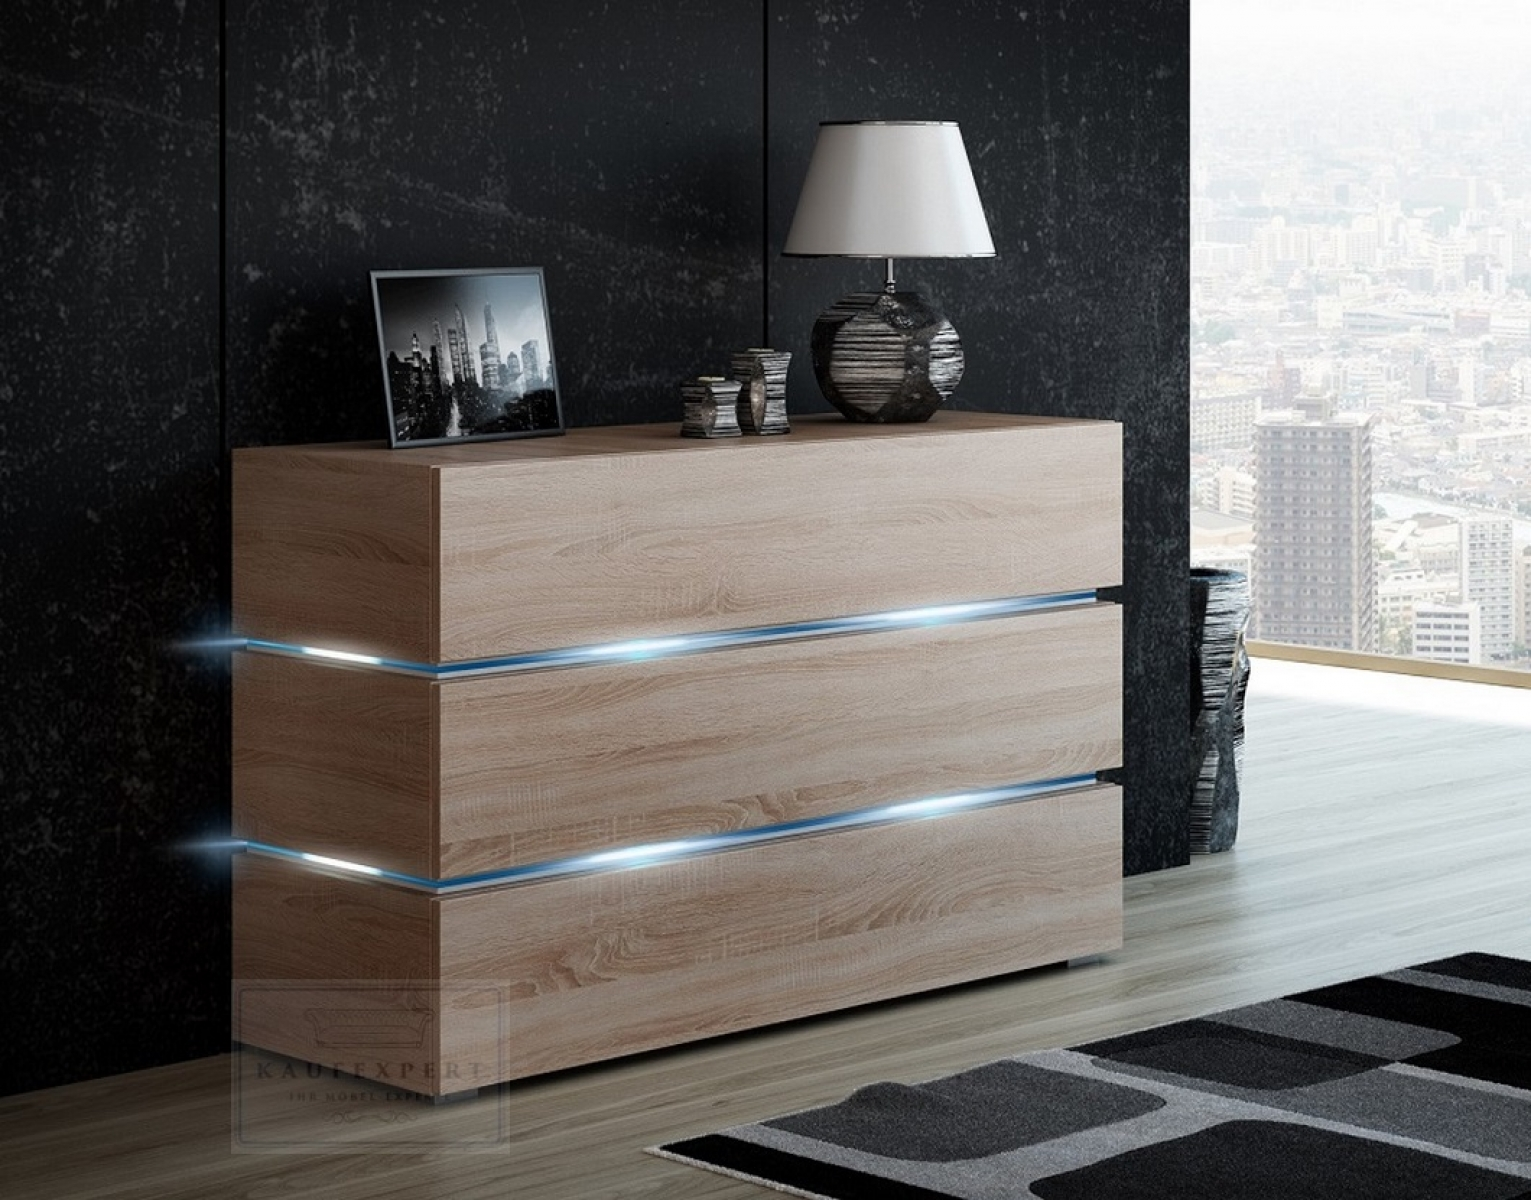 kaufexpert kommode shine sideboard 120 cm sonoma eiche led beleuchtung modern design tv m bel. Black Bedroom Furniture Sets. Home Design Ideas